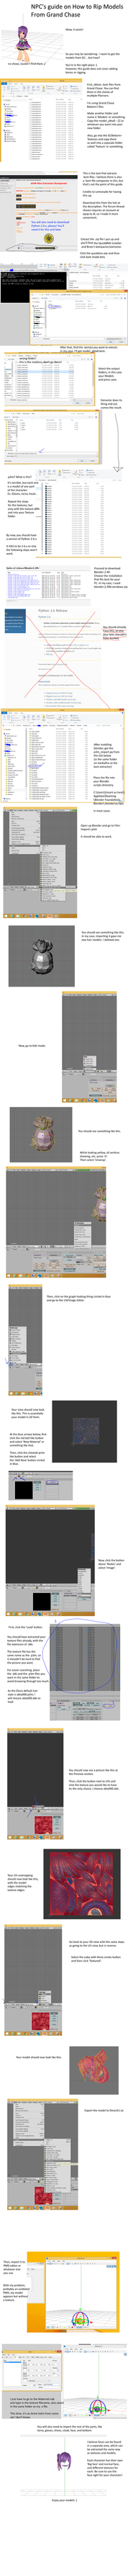 How to Rip Models from Grand Chase by NPCZero